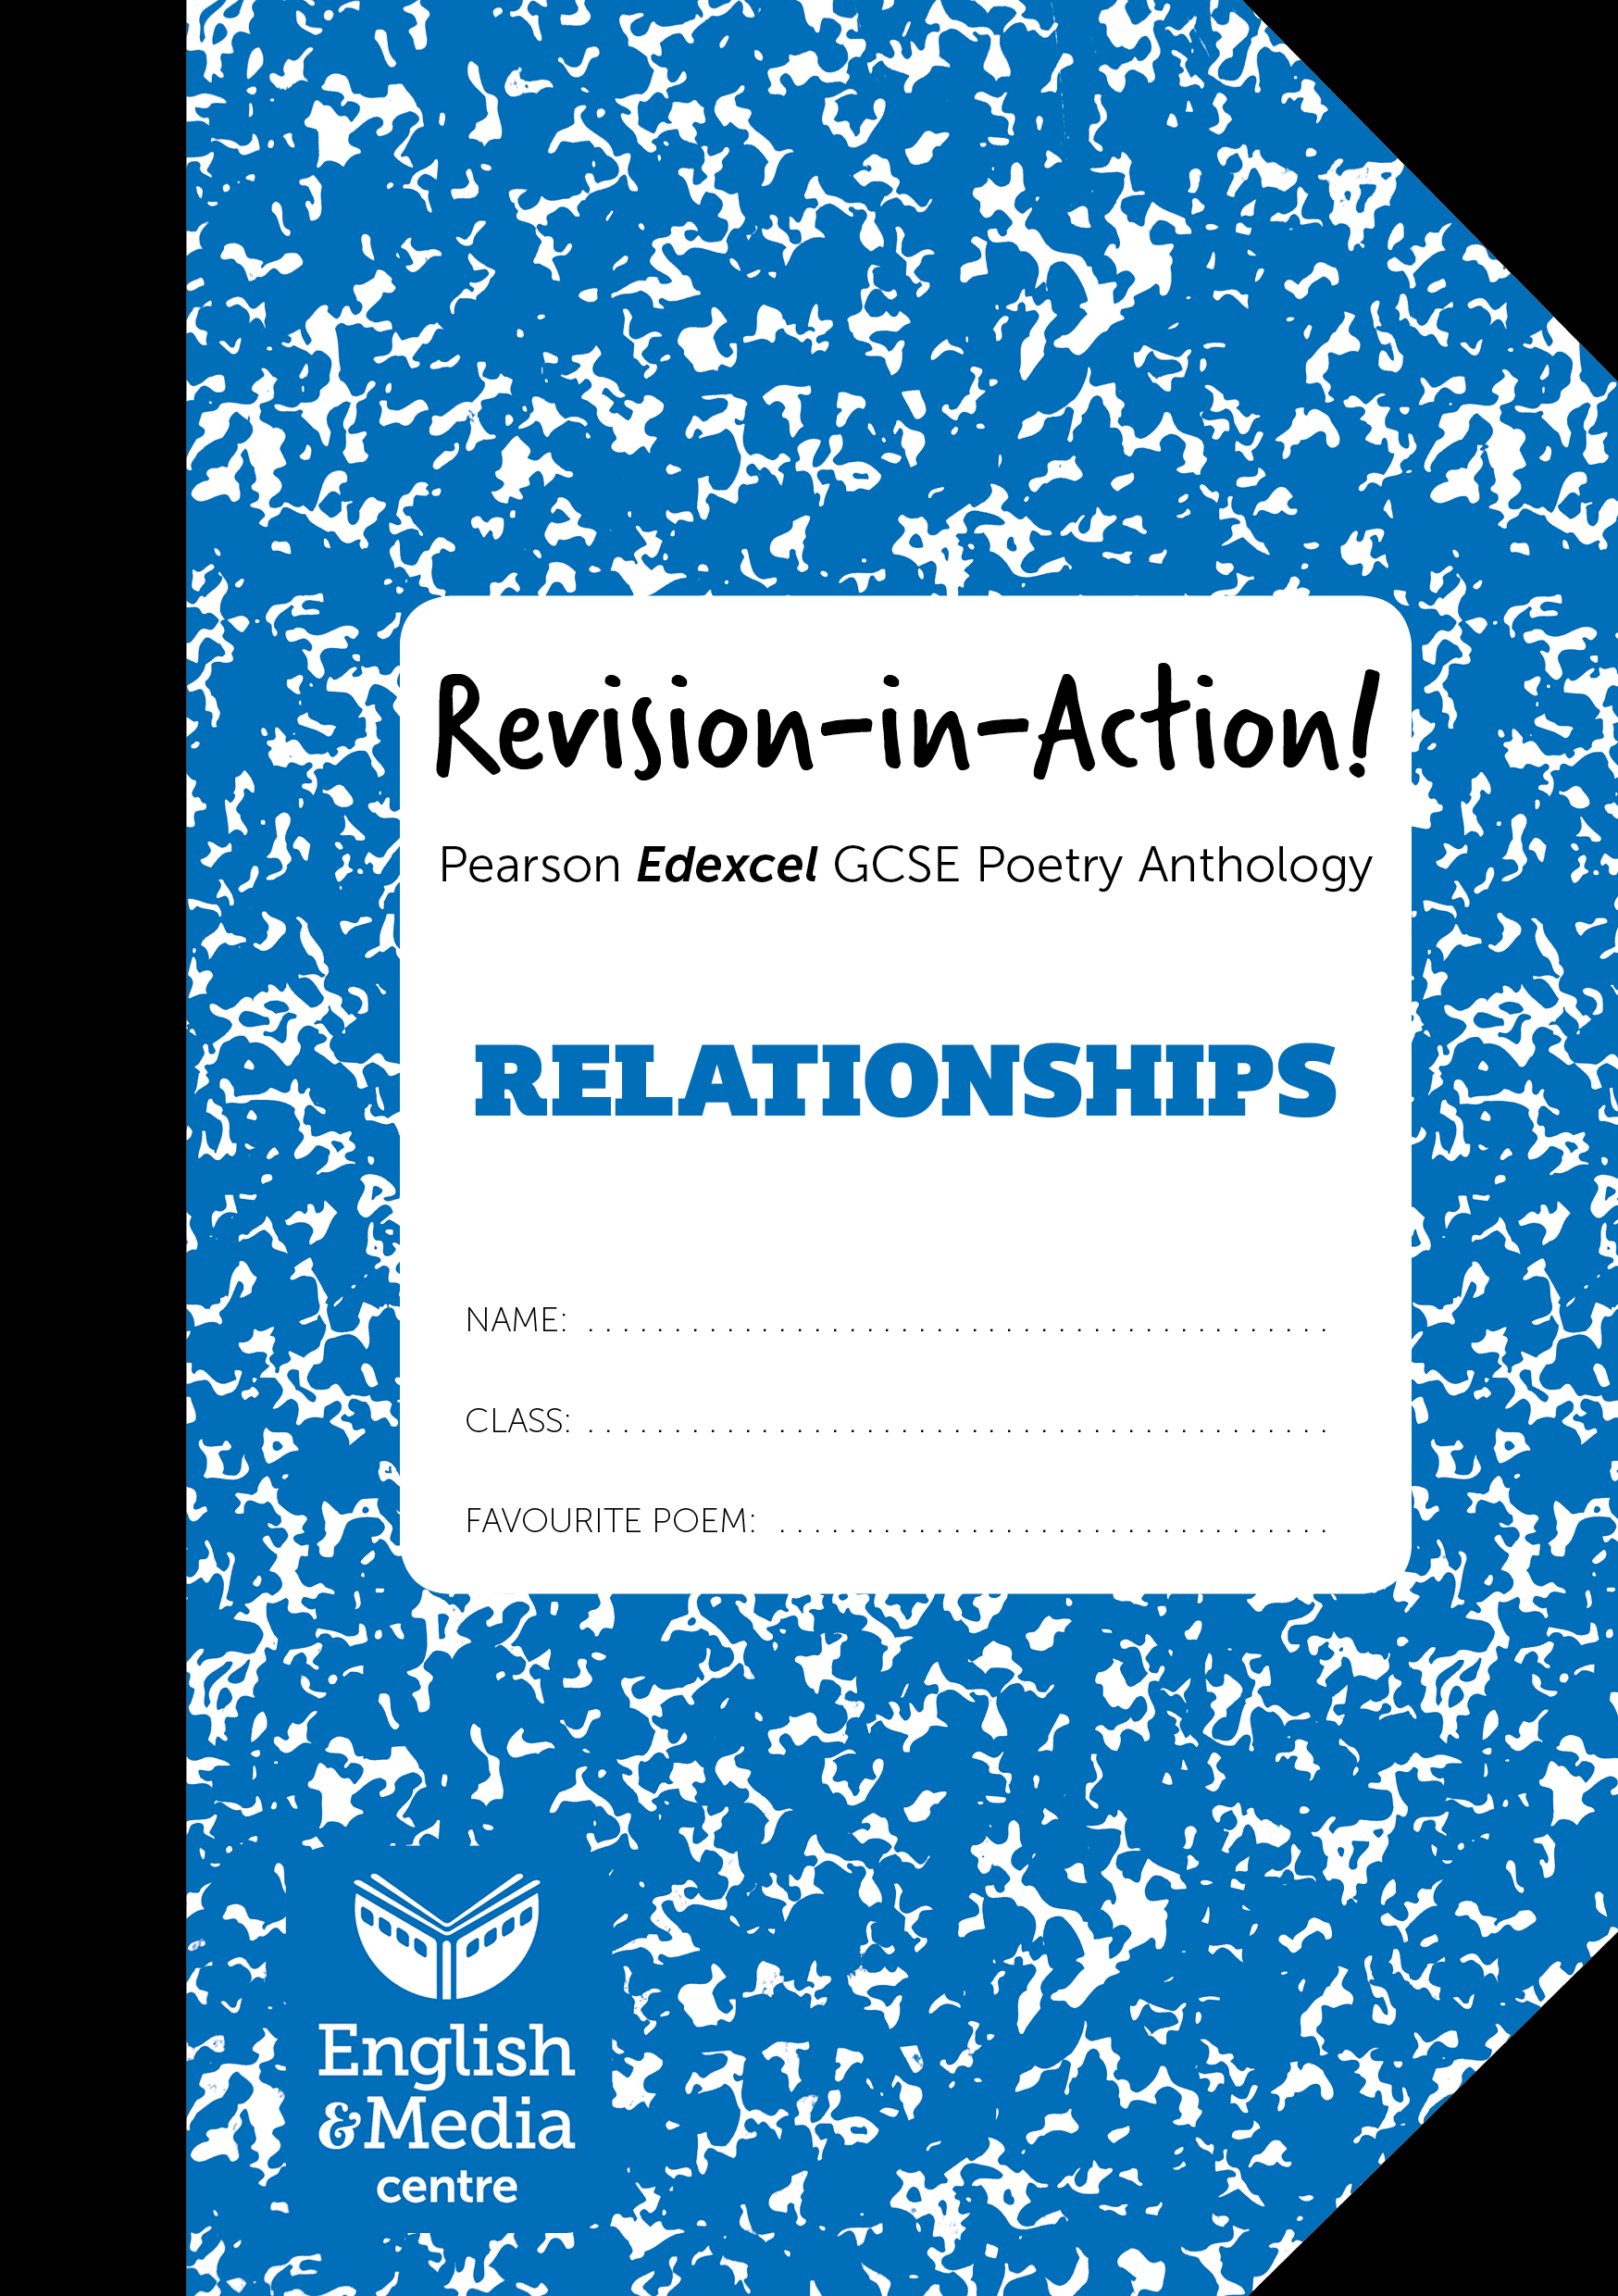 Cover image for Revision-in-Action – Edexcel Relationships (6+ sets of 10 workbooks = £1 per copy)